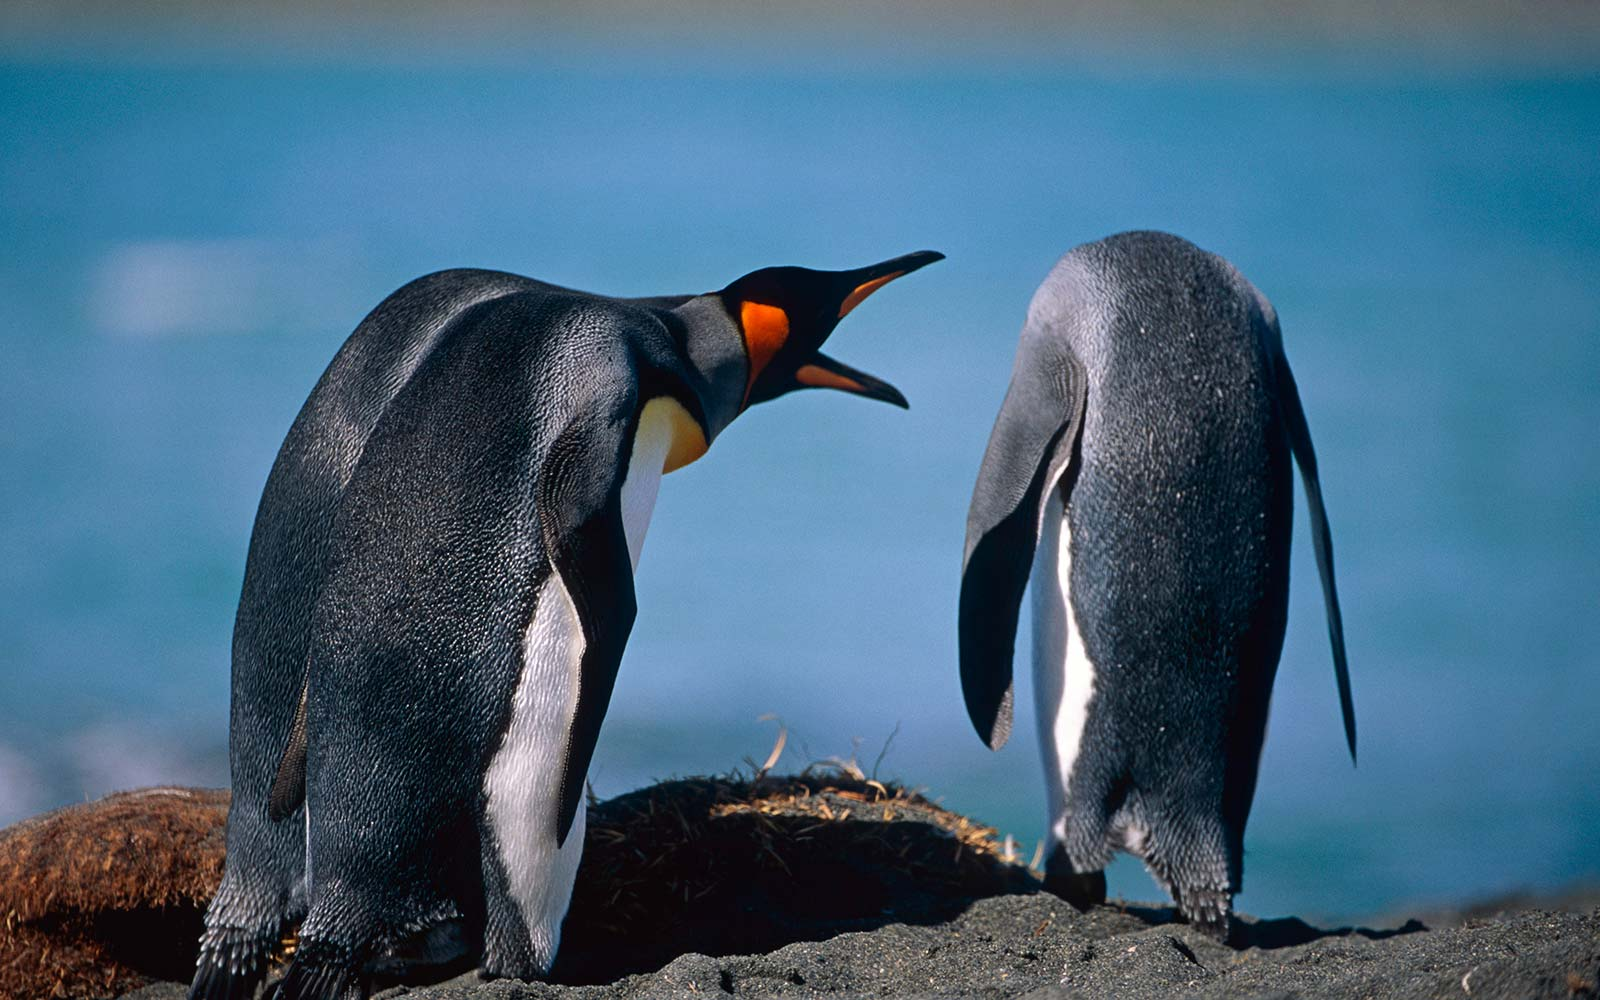 A pair of King Penguins interacting together on a beach, South Georgia Island, Antarctic, Summer